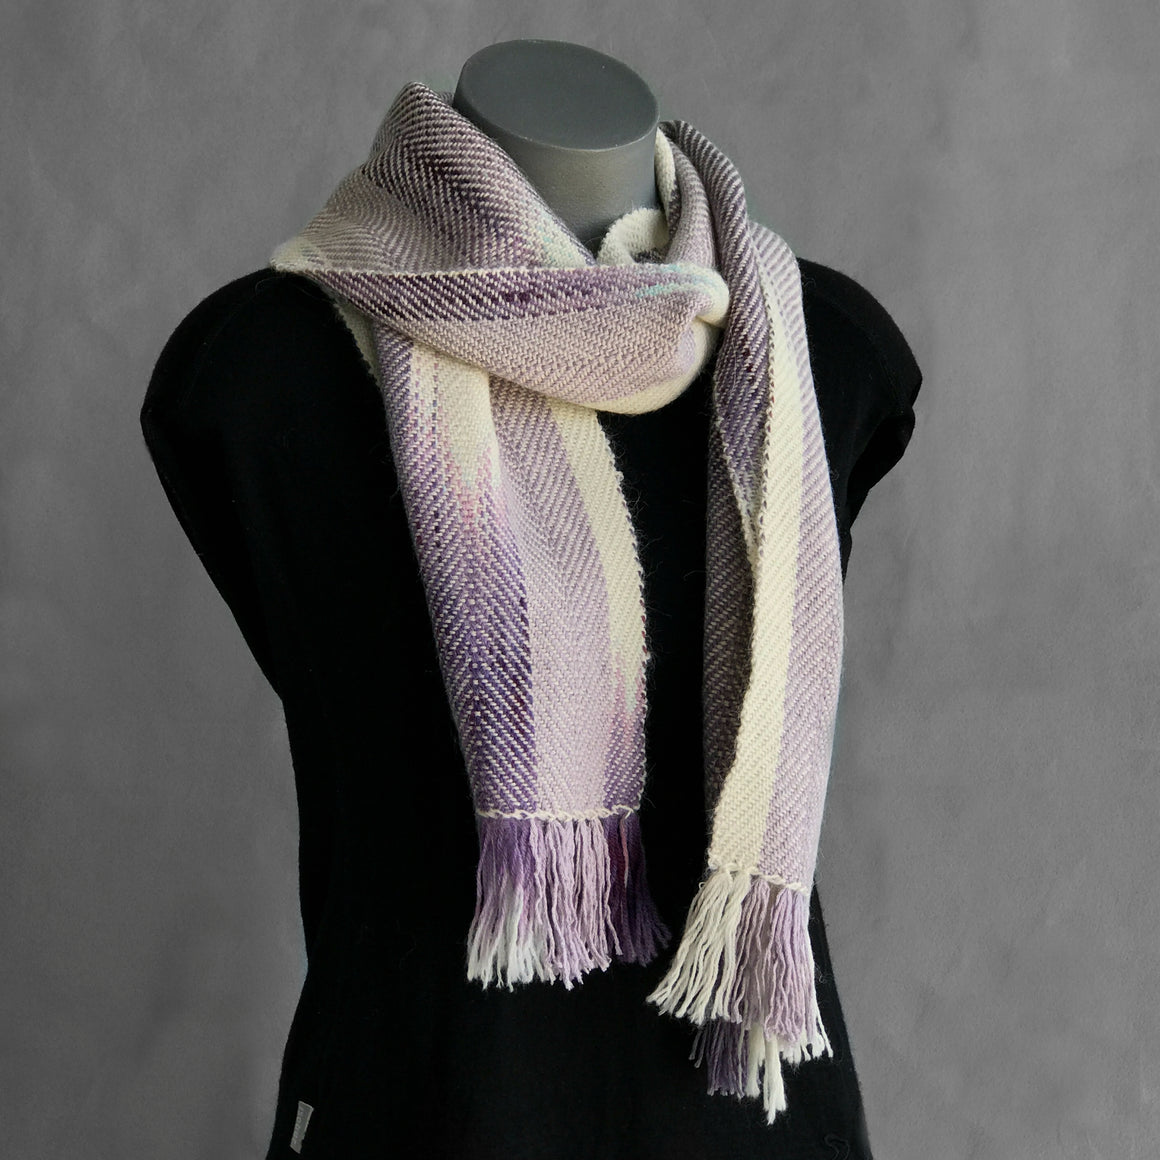 A limited edition scarf handwoven from luxurious alpaca, silk and merino wool, featuring hand-dyed pools of colour in lavender and mauve.